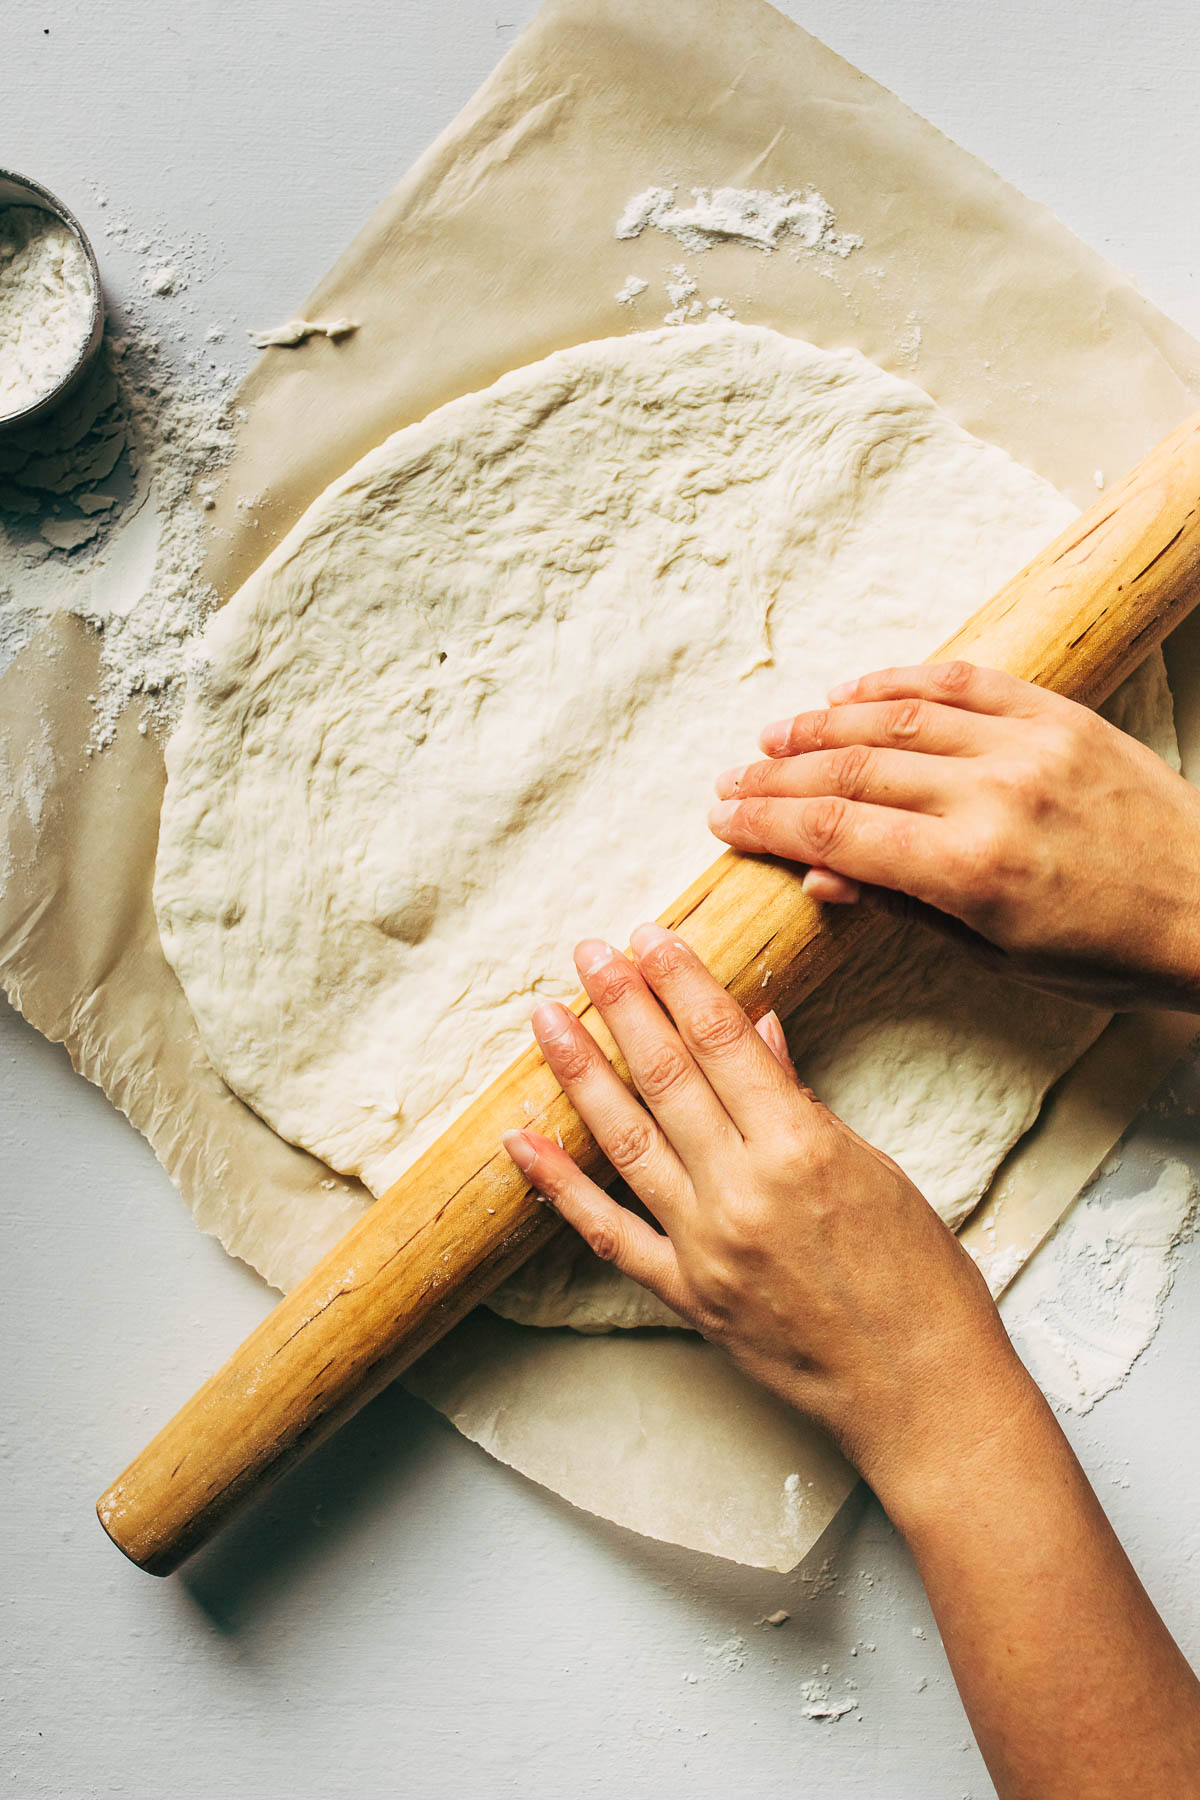 Hands rolling pizza dough on brown parchment paper.